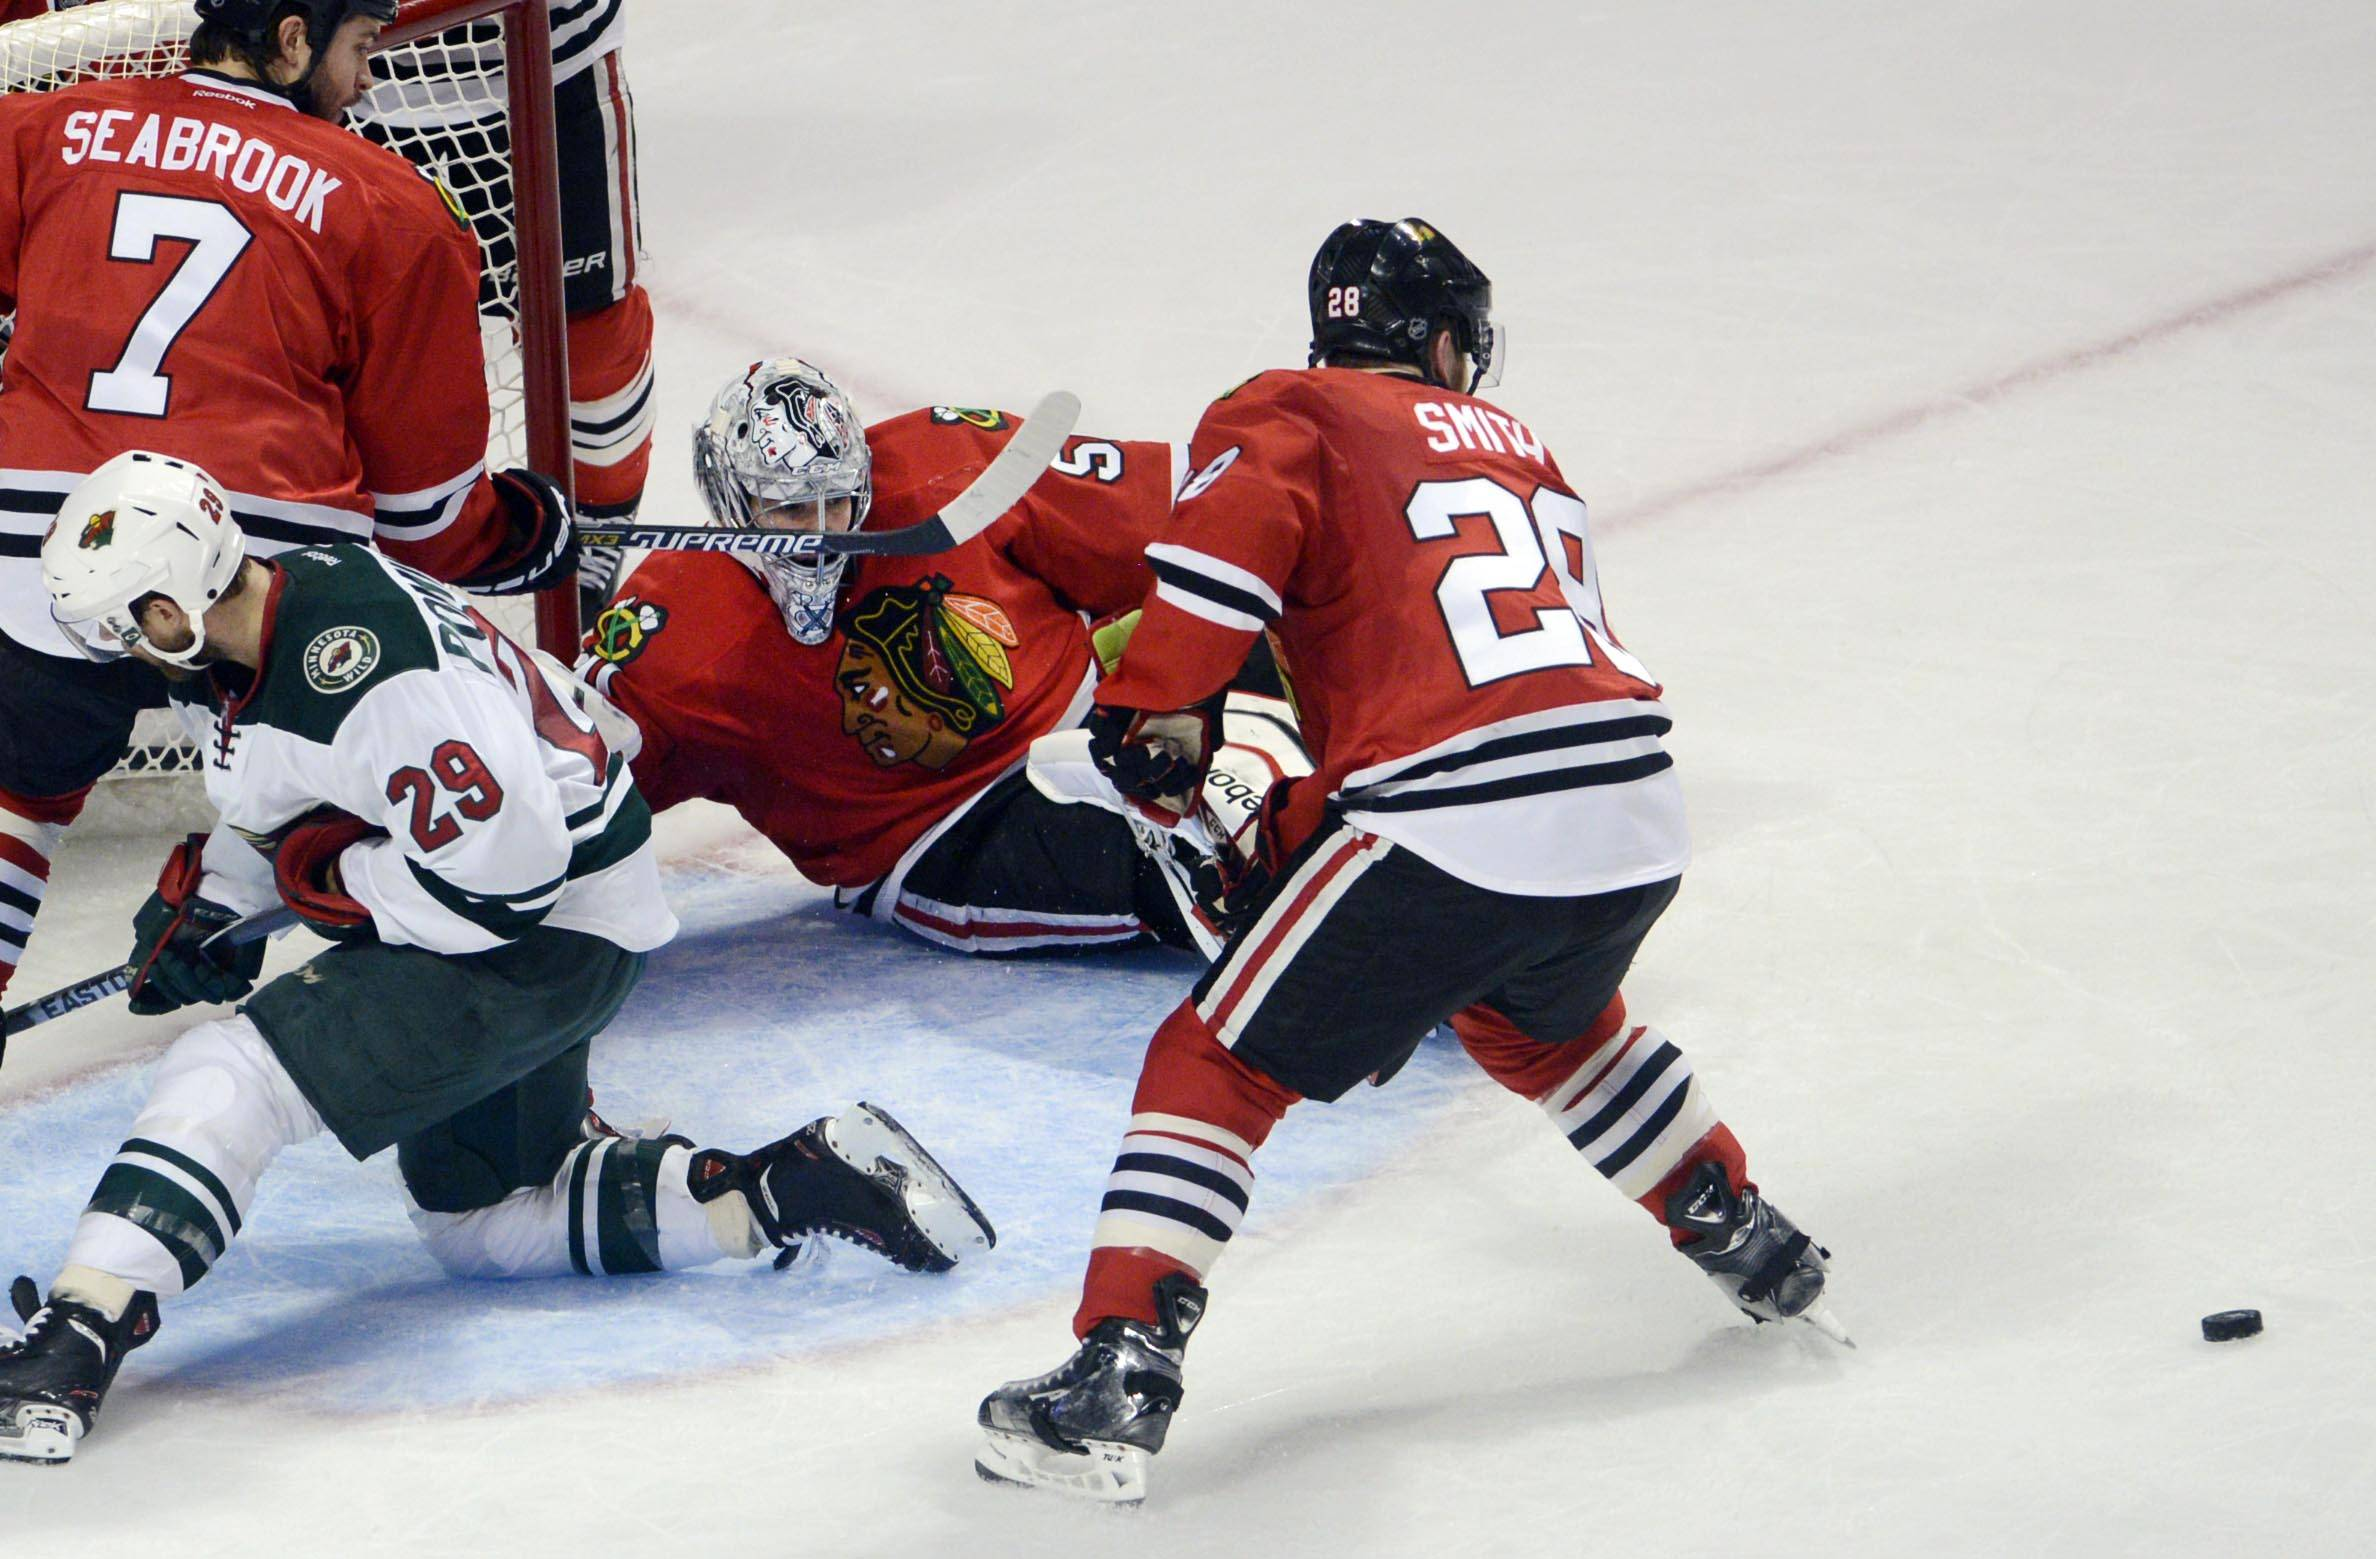 Chicago Blackhawks goalie Corey Crawford redirects the puck Sunday against the Minnesota Wild.